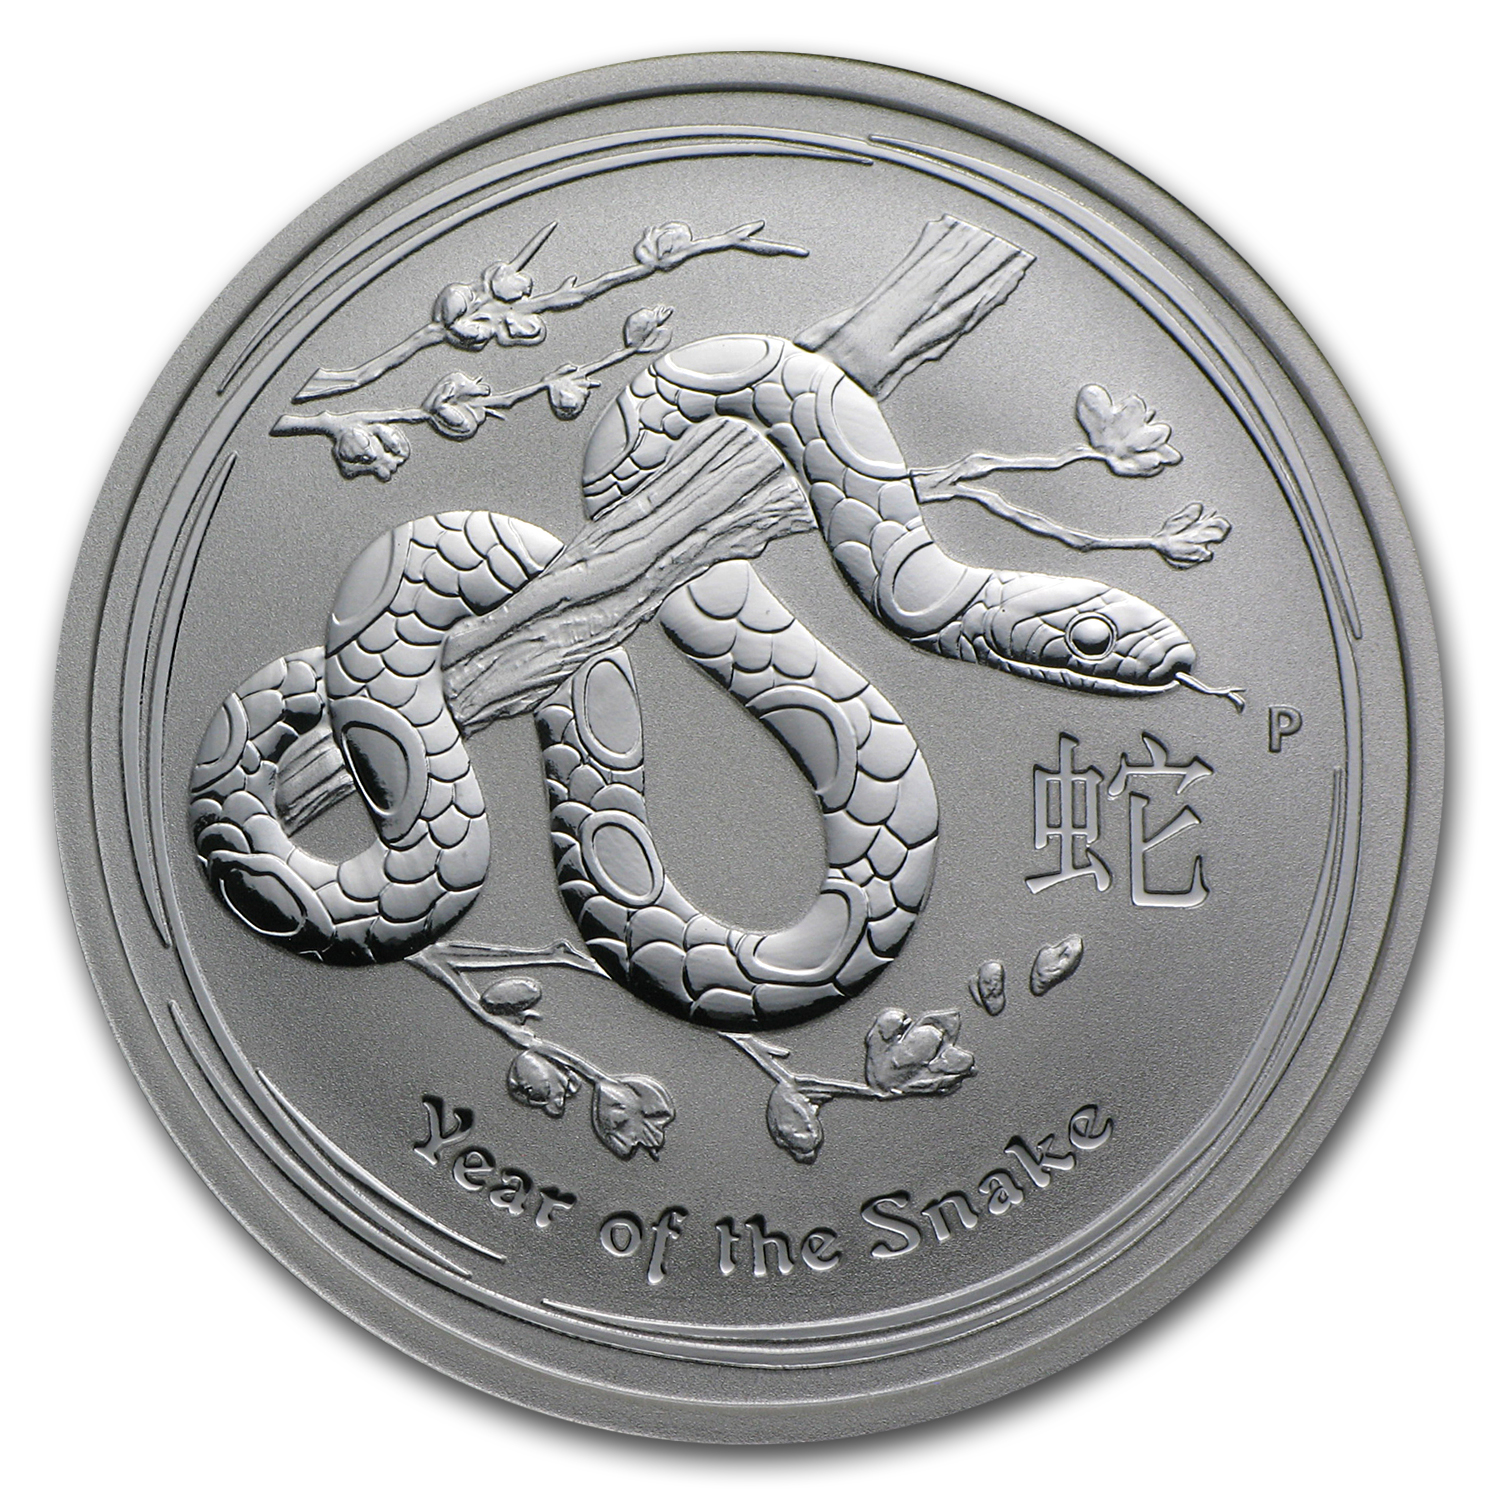 2013 Australia 1/2 oz Silver Year of the Snake BU